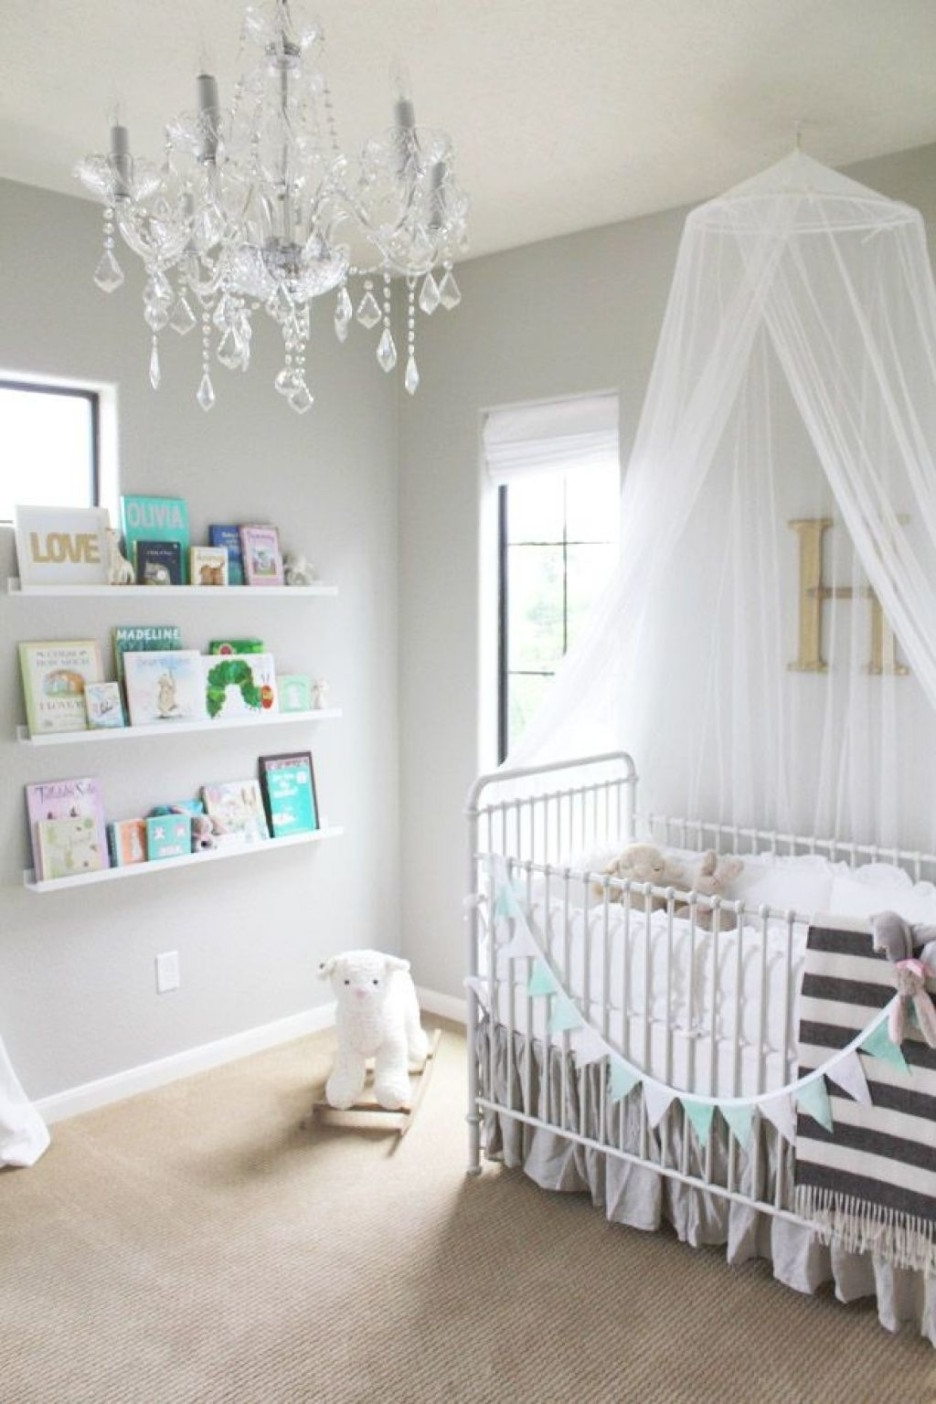 Kids Room : White Cozy Best Baby Nursery Chandelier To Select Throughout Most Current Kids Bedroom Chandeliers (View 10 of 15)